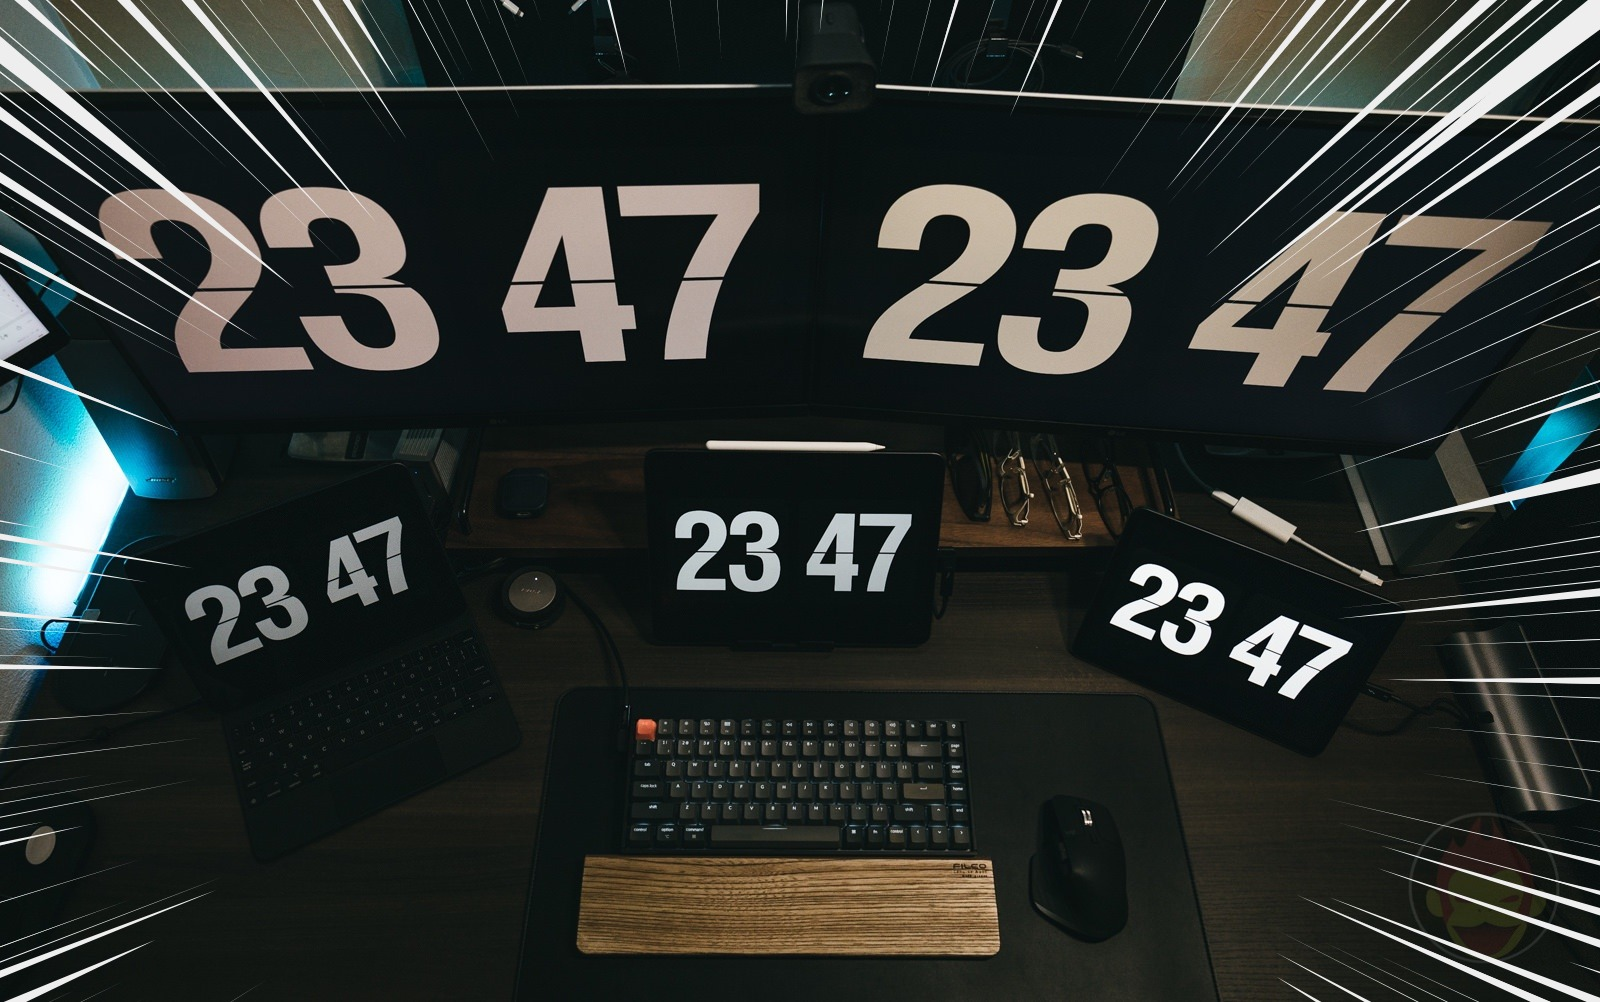 2-4k-displays-3-ipadpros-multimoniter-02-lines.jpg